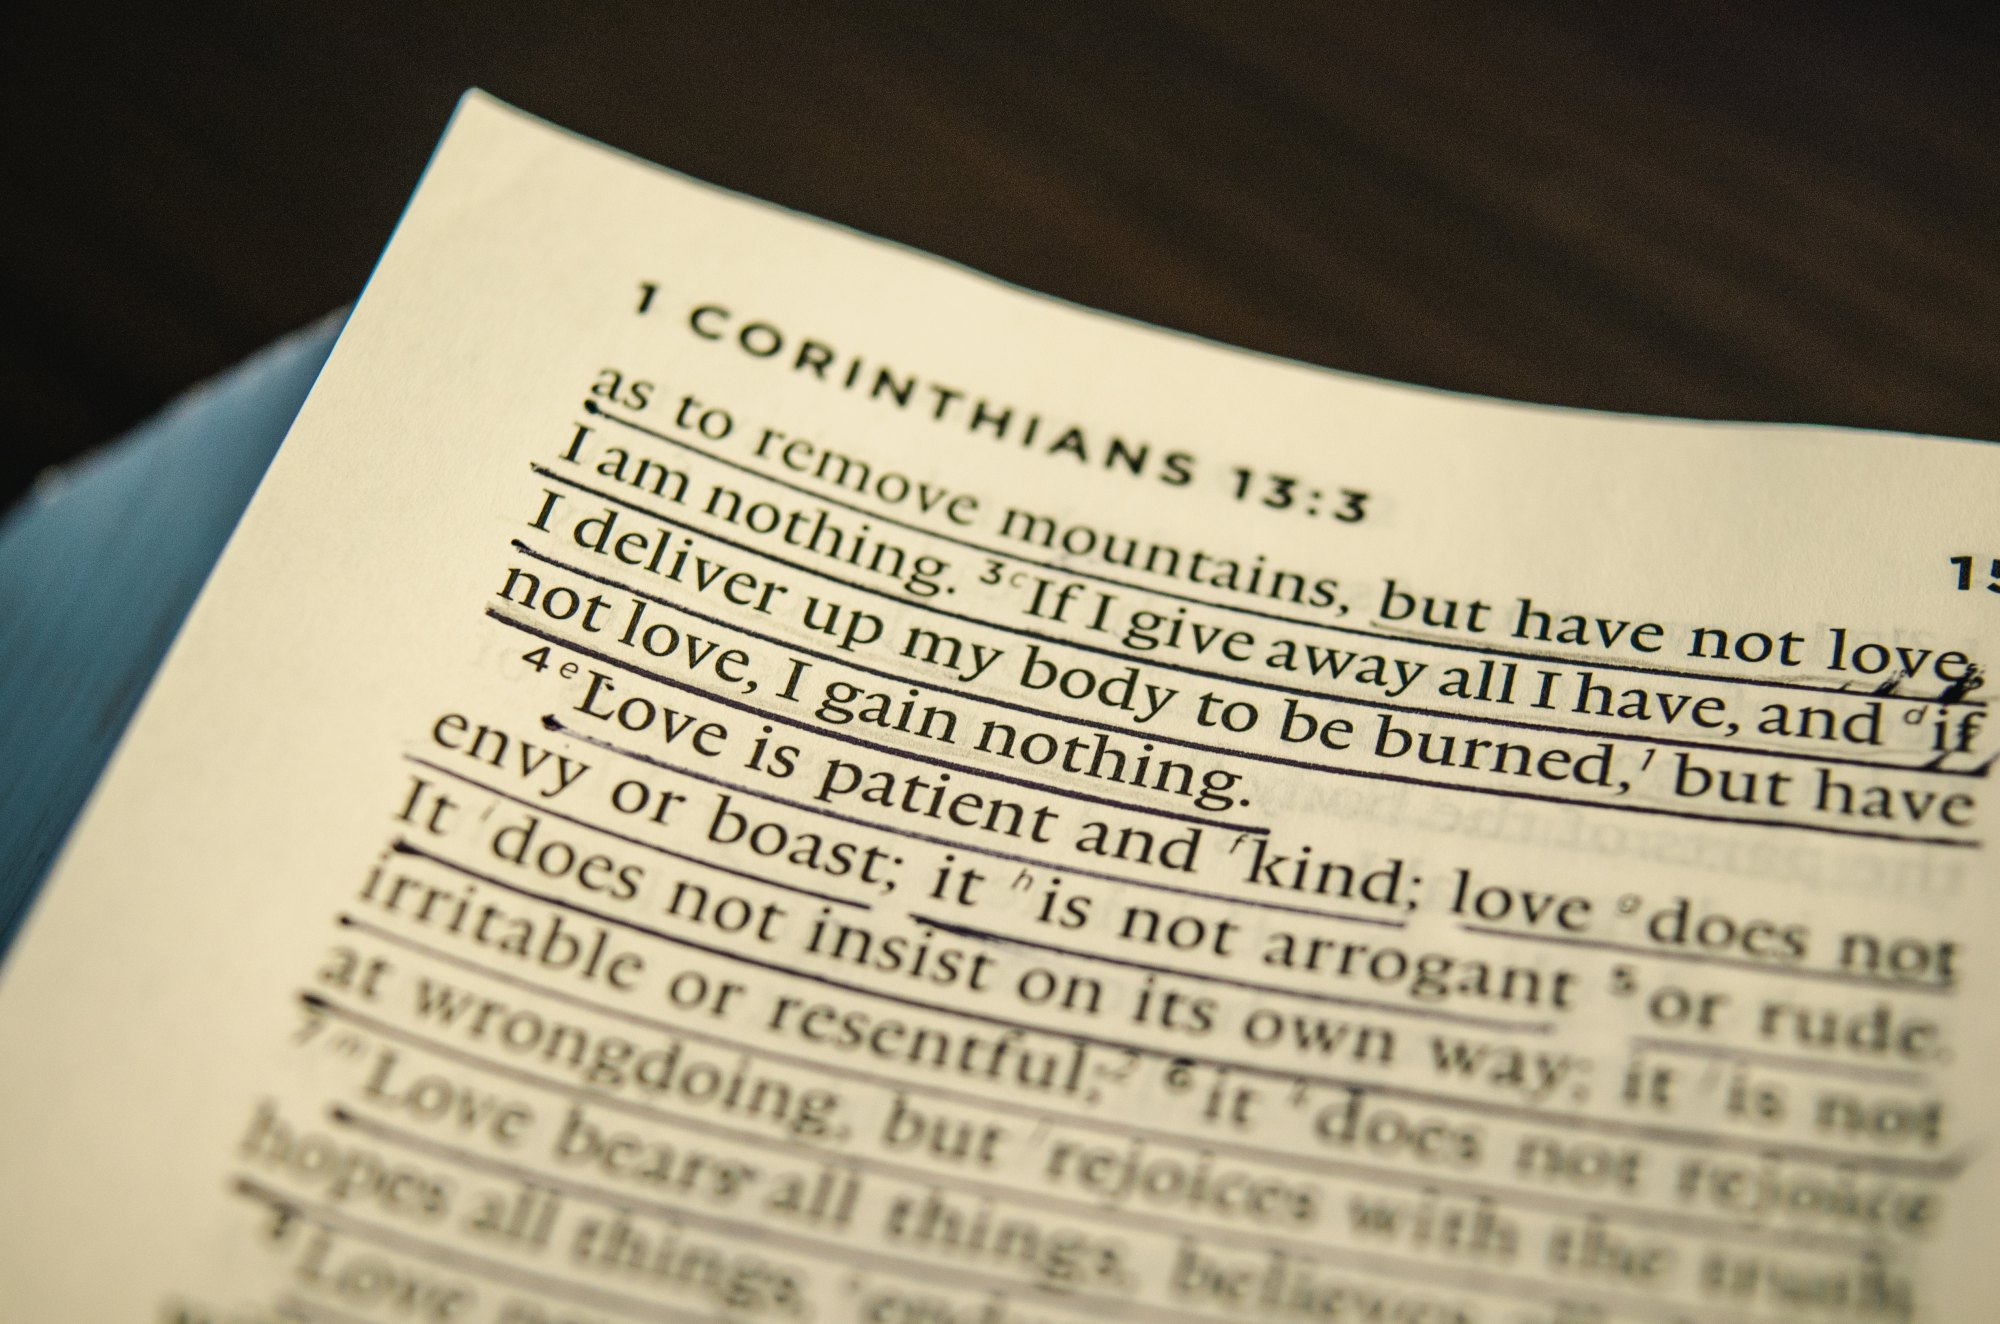 Image of 1 Corinthians 13 love verses